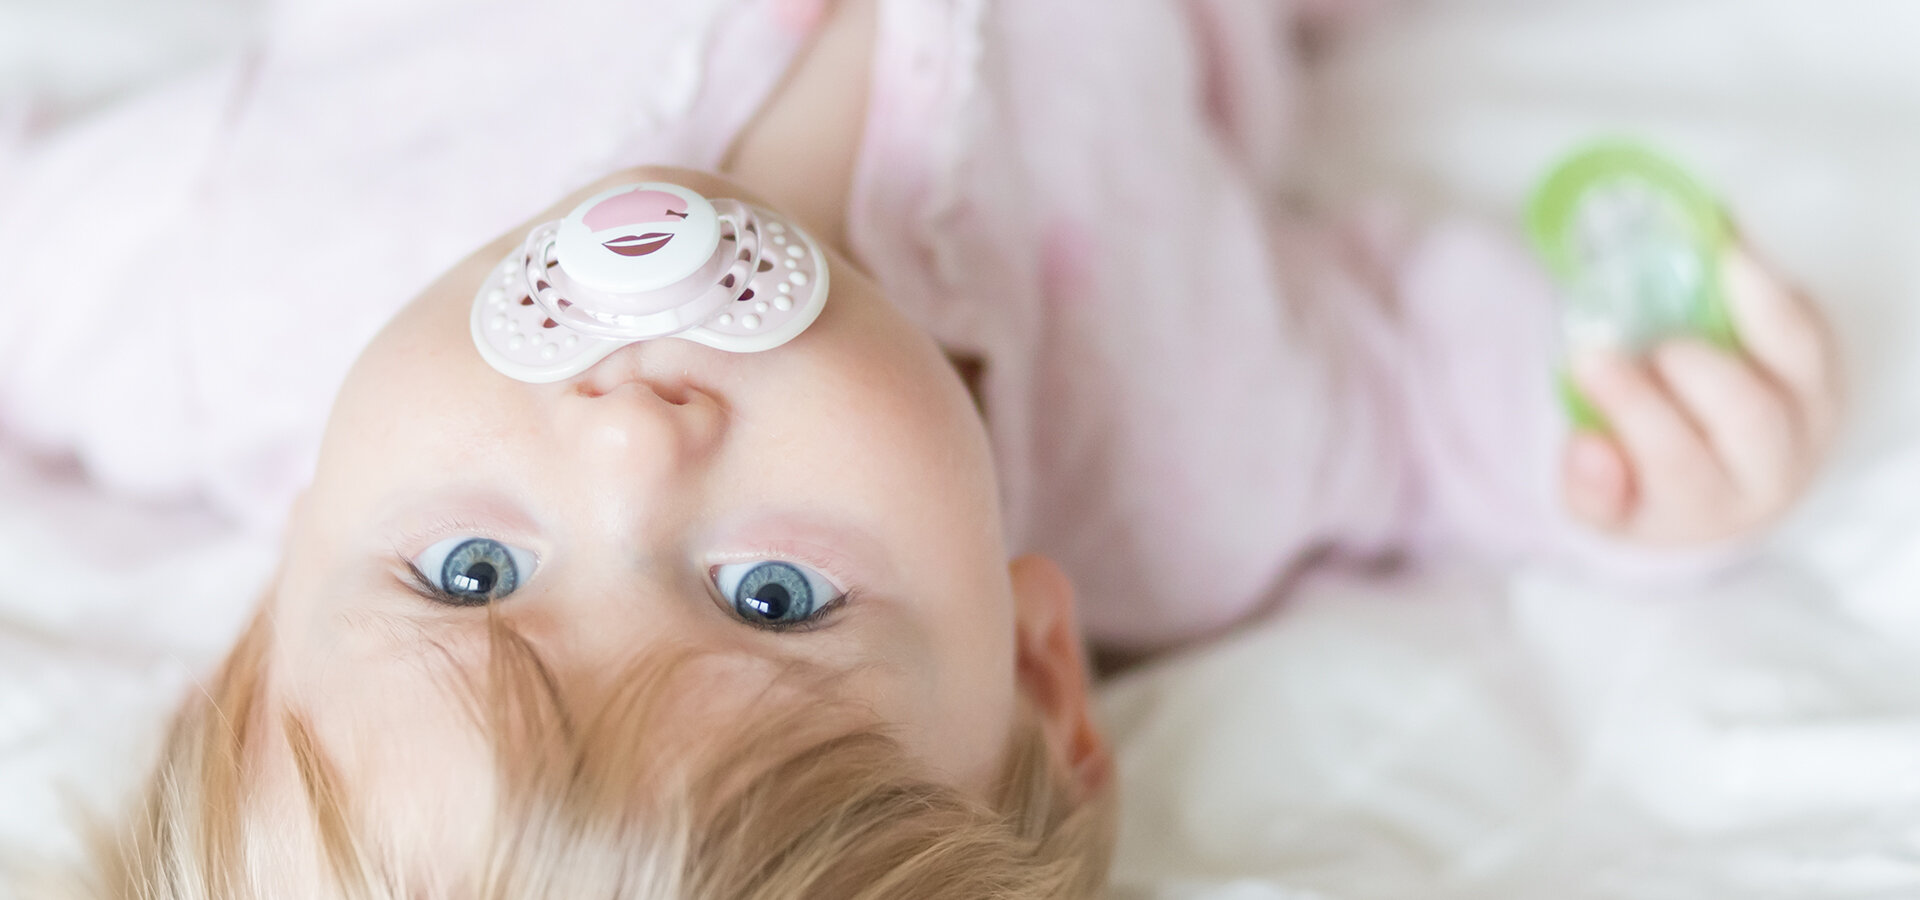 A baby girl is lying in bed with a lovi soother